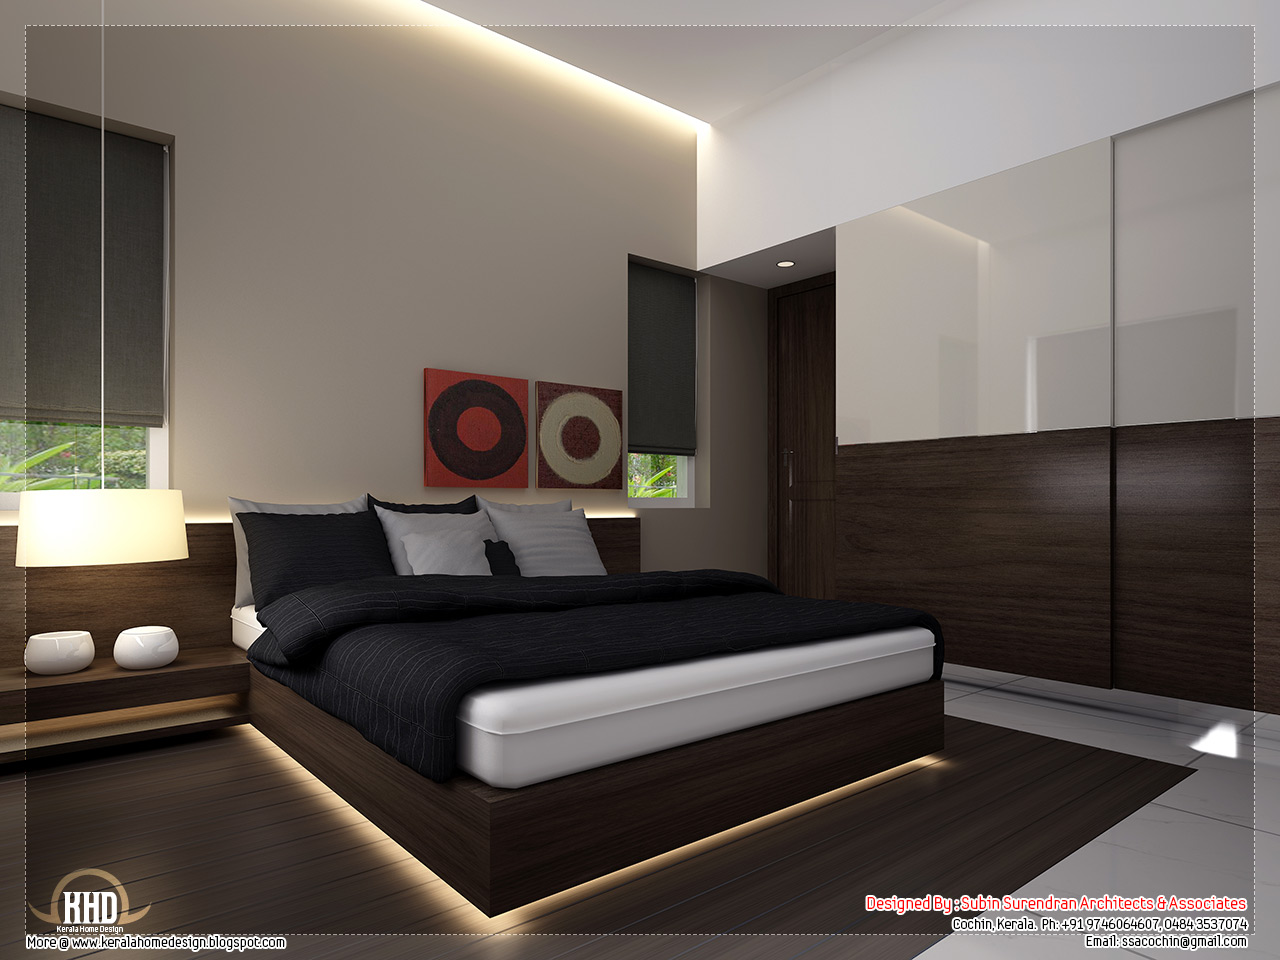 Beautiful home interior designs kerala home design and floor plans - Design of inside house ...